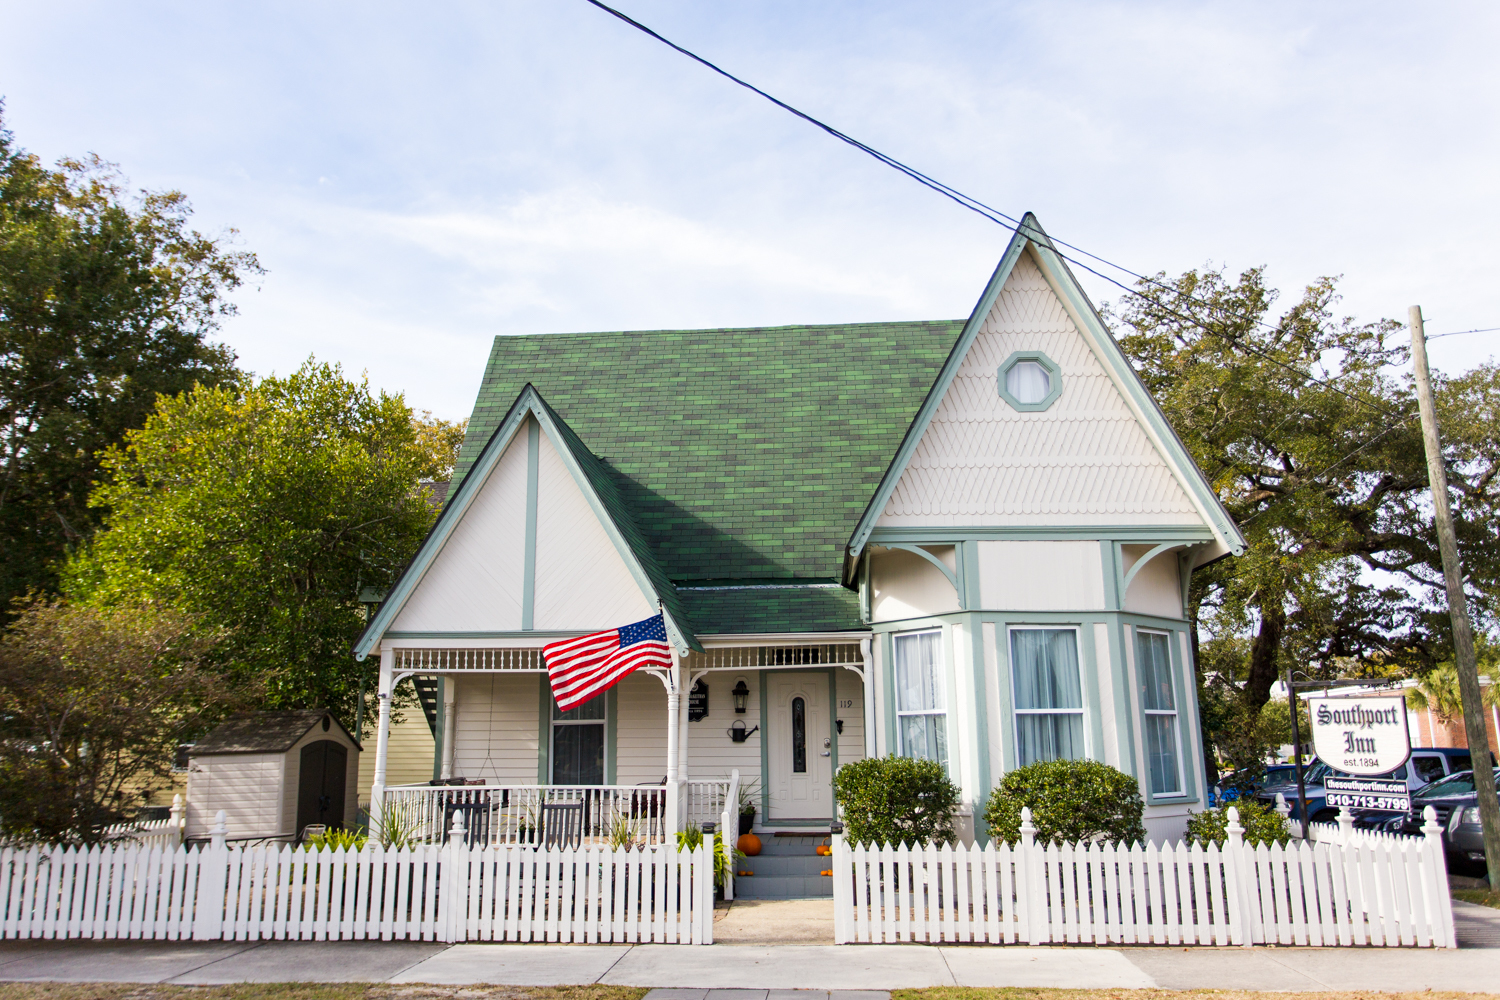 The Southport Inn Bed & Breakfast